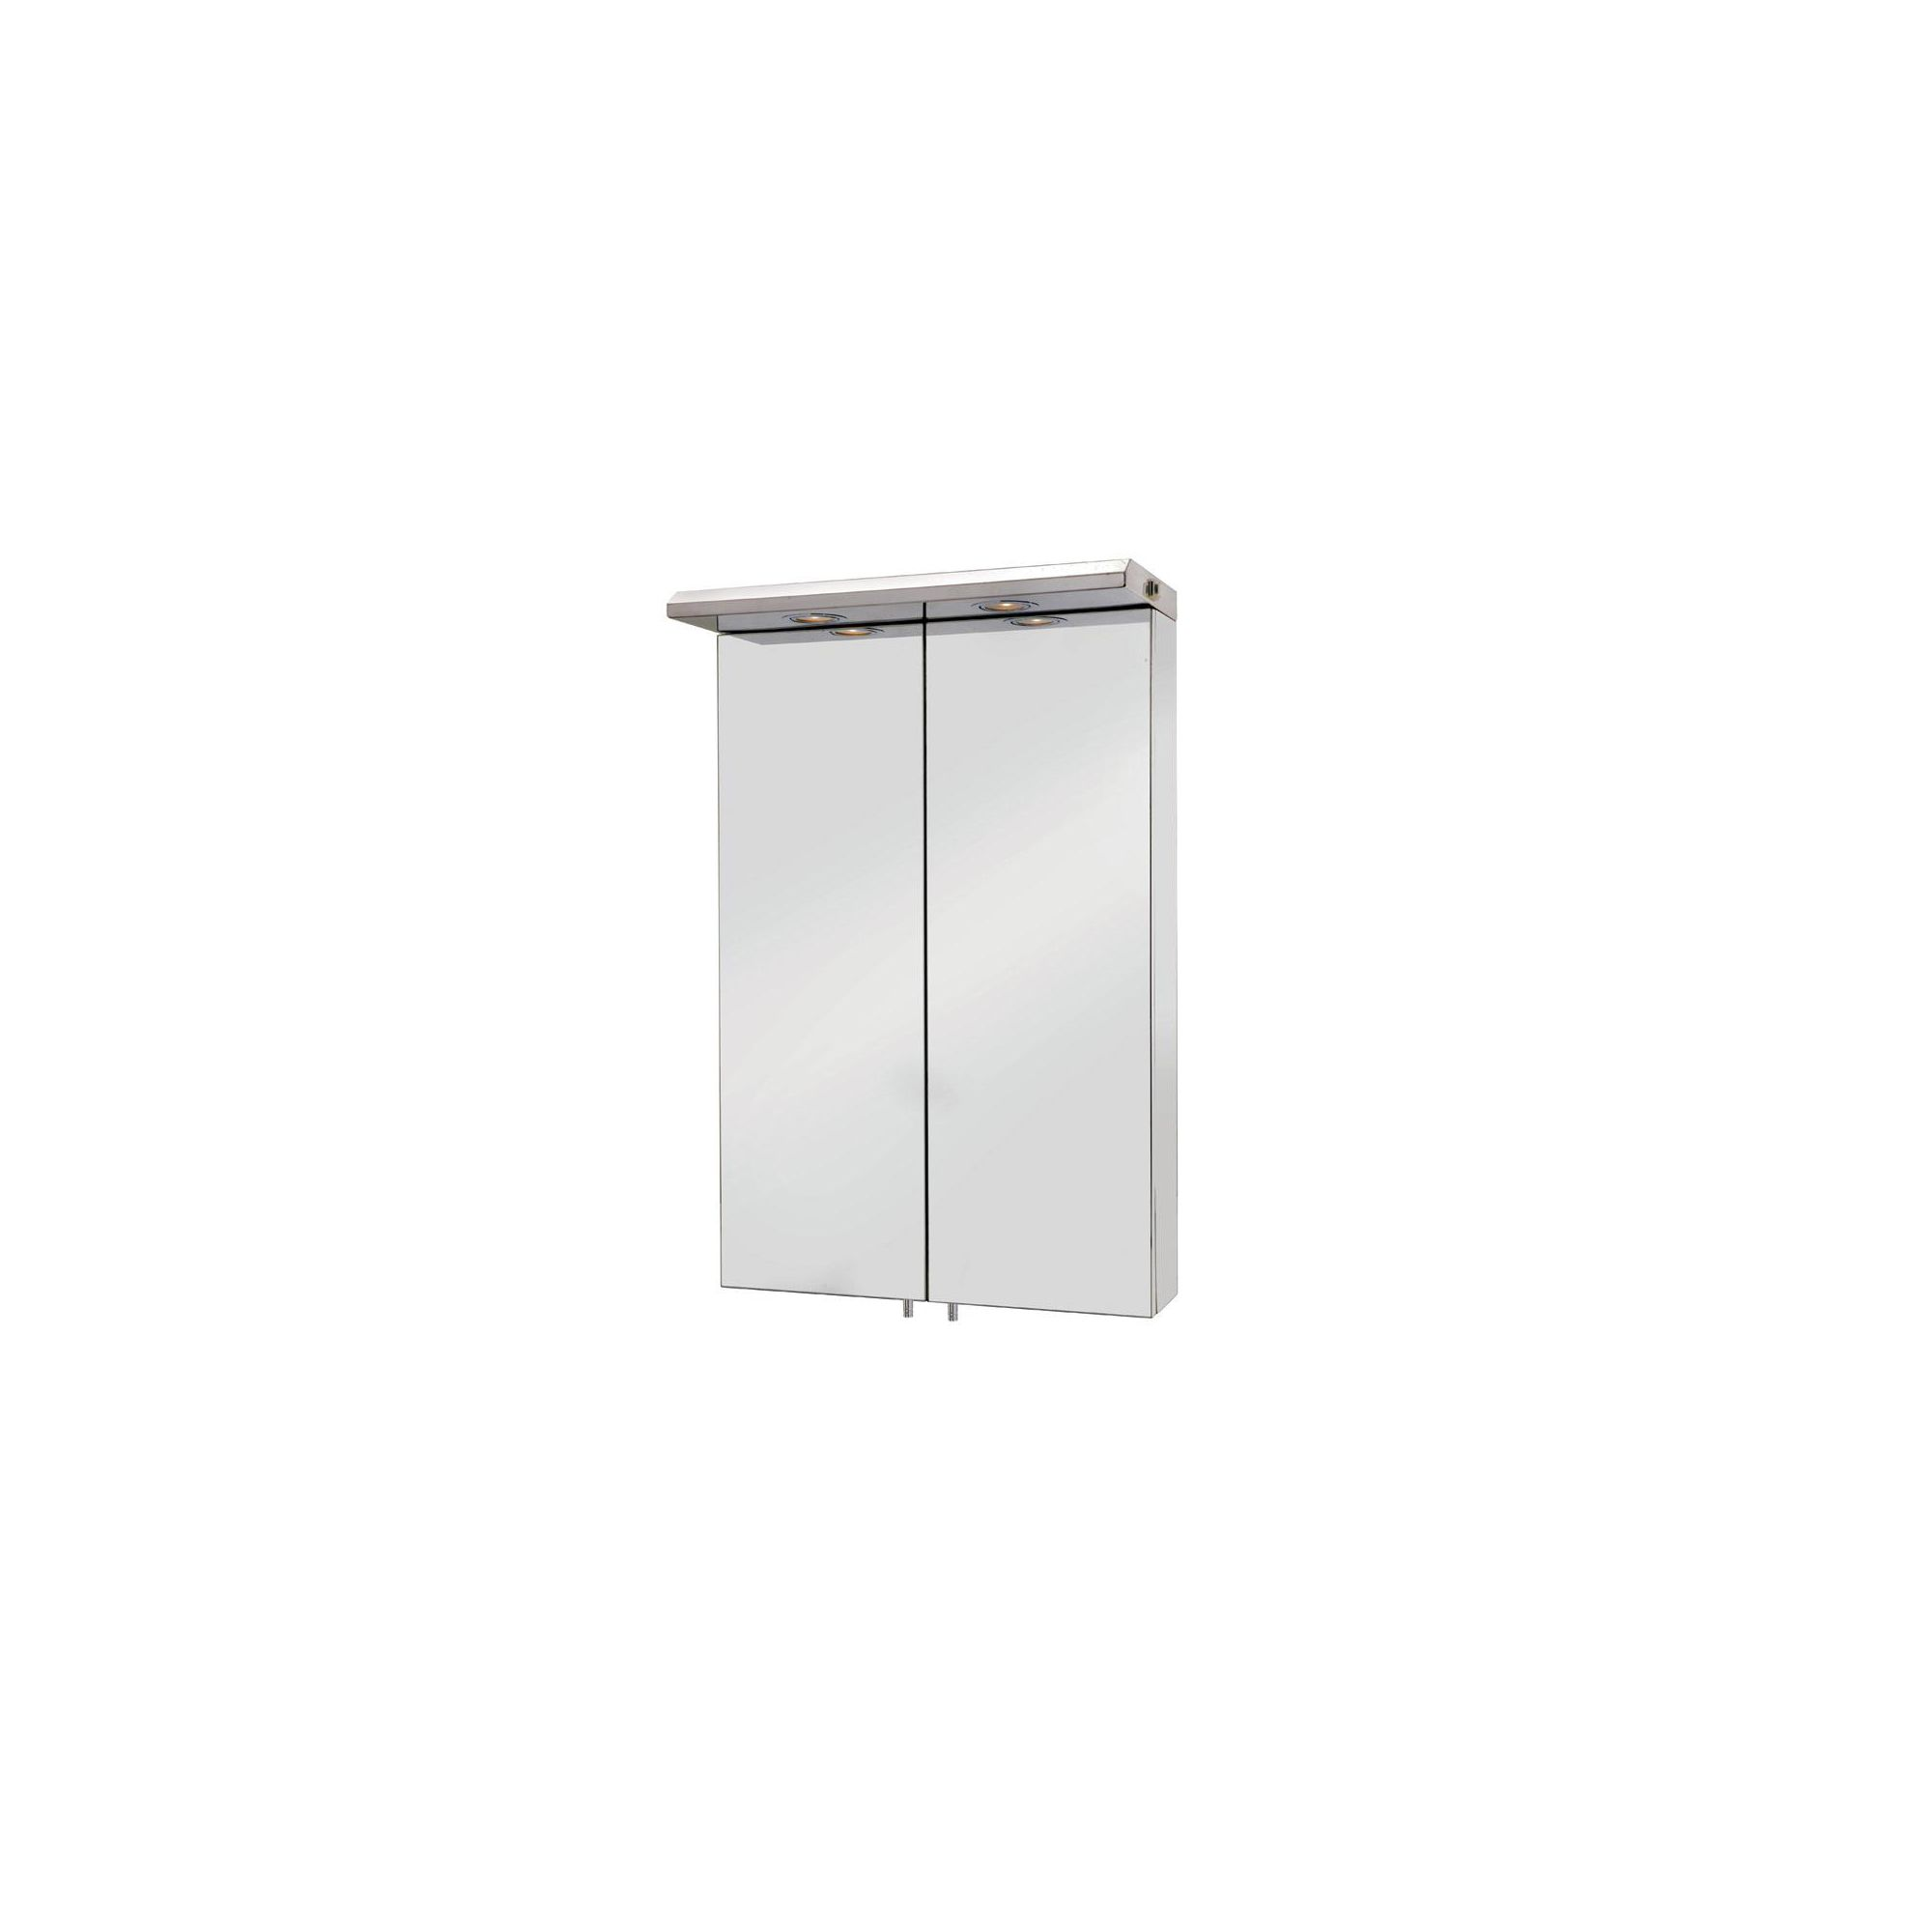 Croydex Colorado Large Double Door Illuminated Stainless Steel Bathroom Cabinet